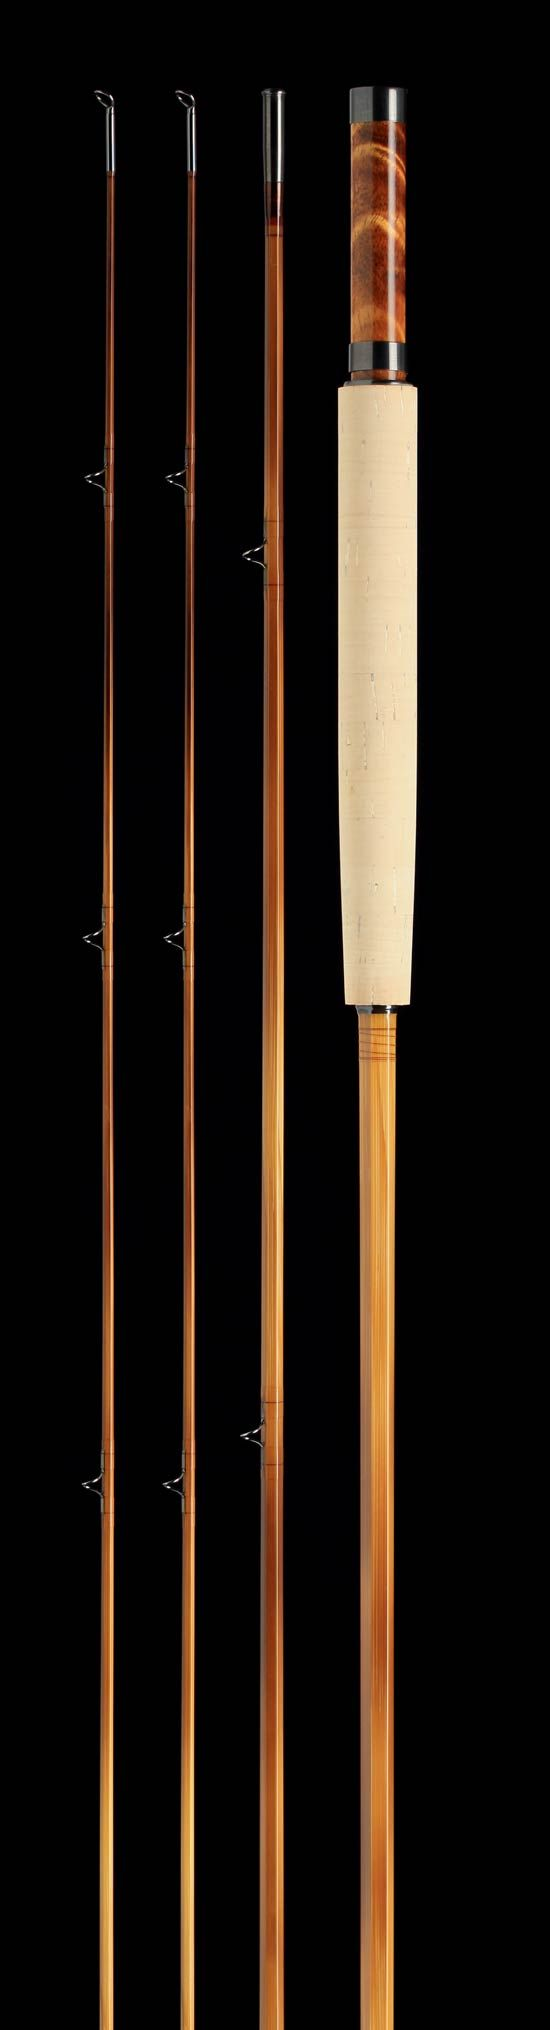 Fly rods bamboo and graphite fly fishing rods eden cane for Bamboo fishing rods